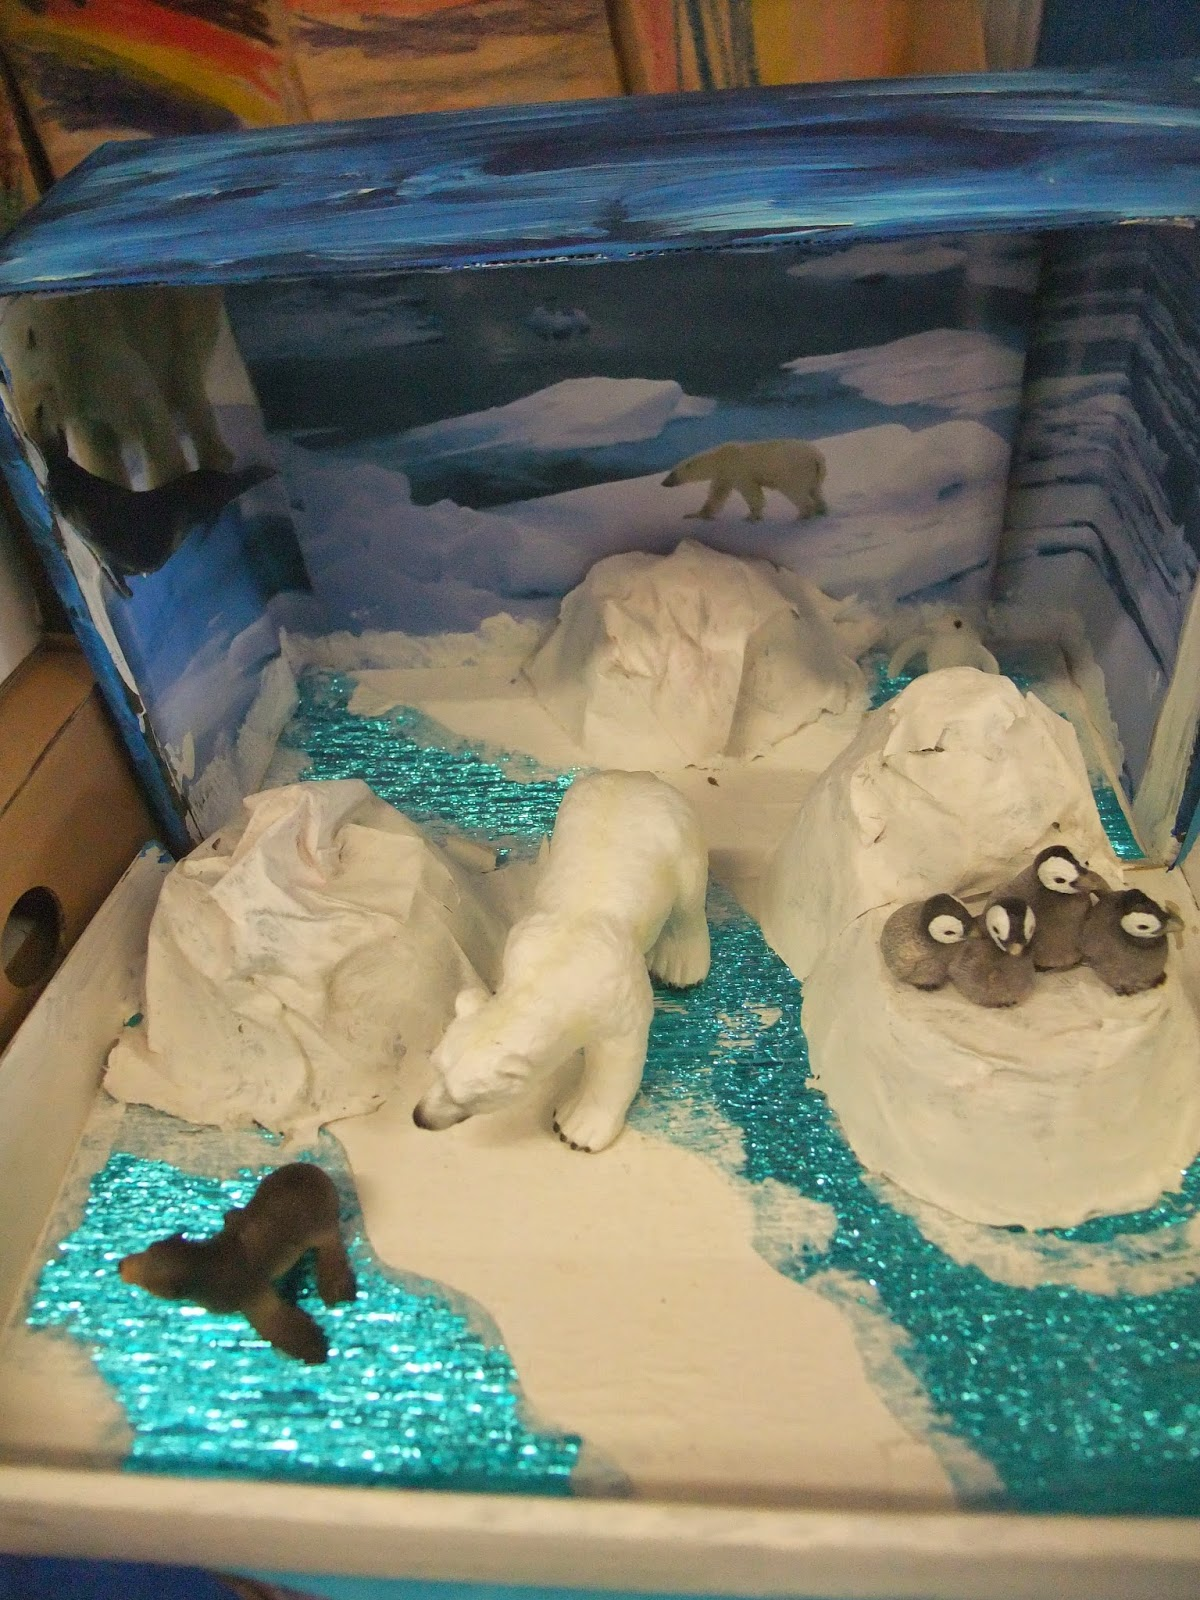 Arctic Diorama Images - Reverse Search